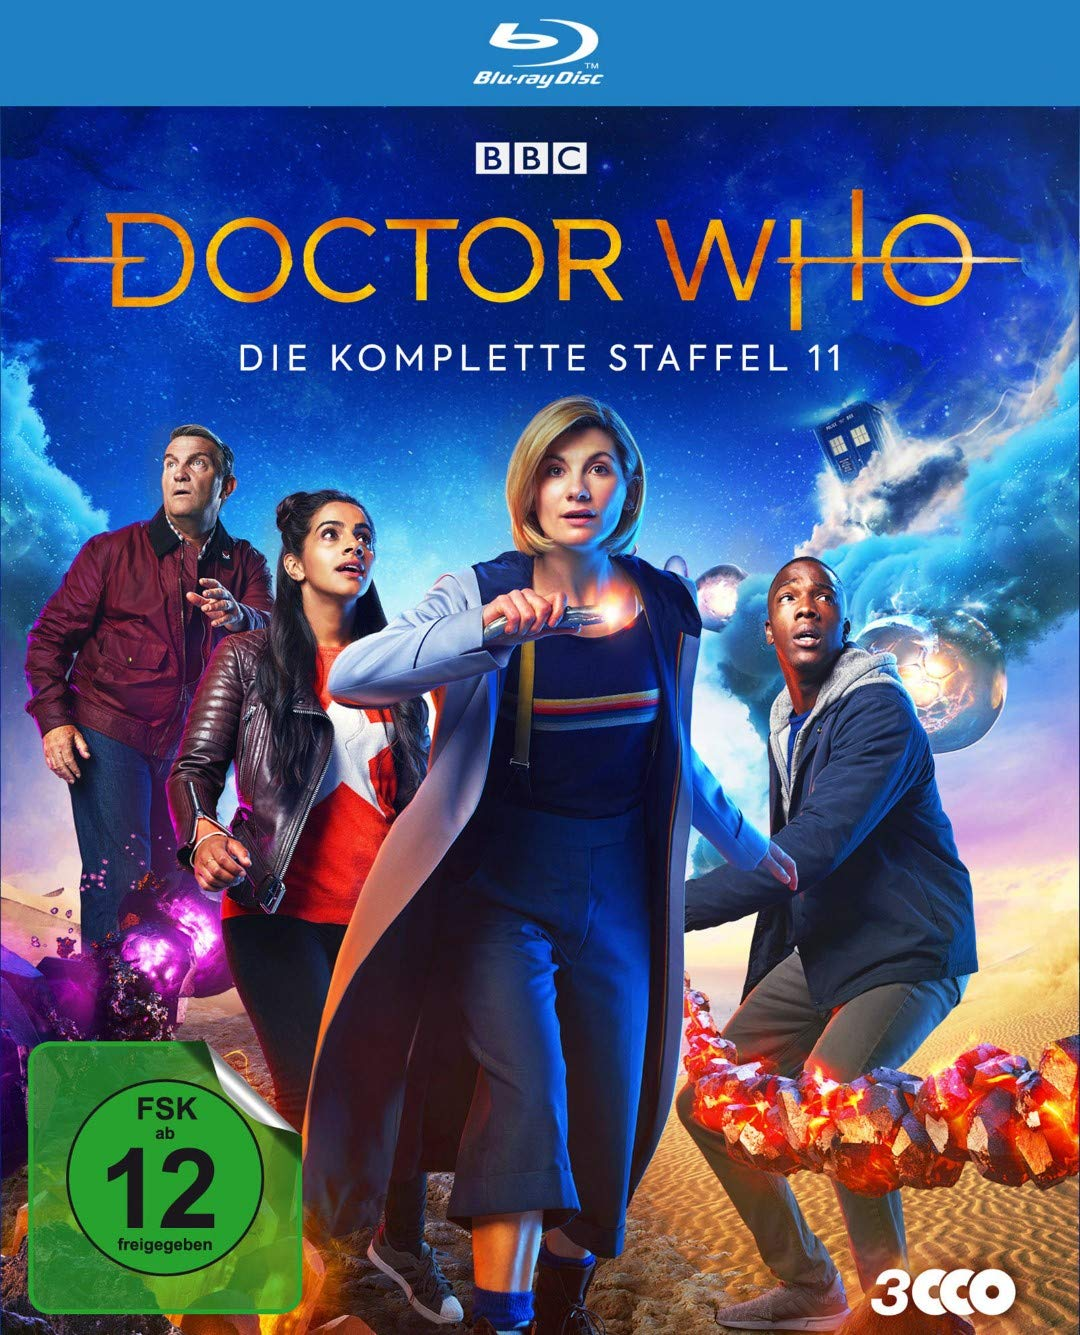 Doctor Who - Staffel 11 bei Amazon bestellen